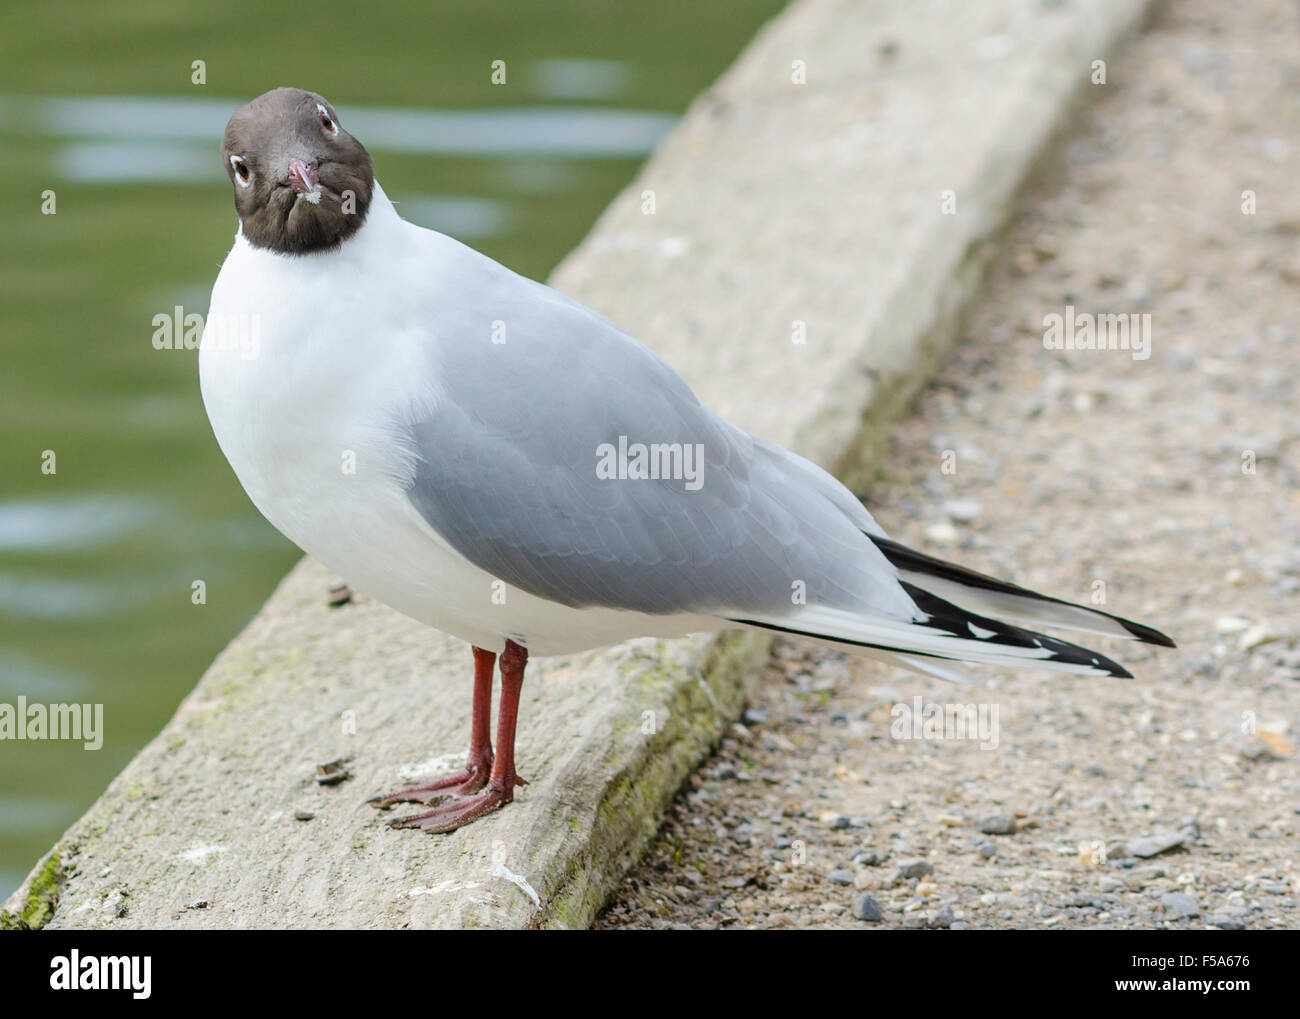 black-headed-gull-standing-by-water-making-a-funny-face-F5A676.jpg